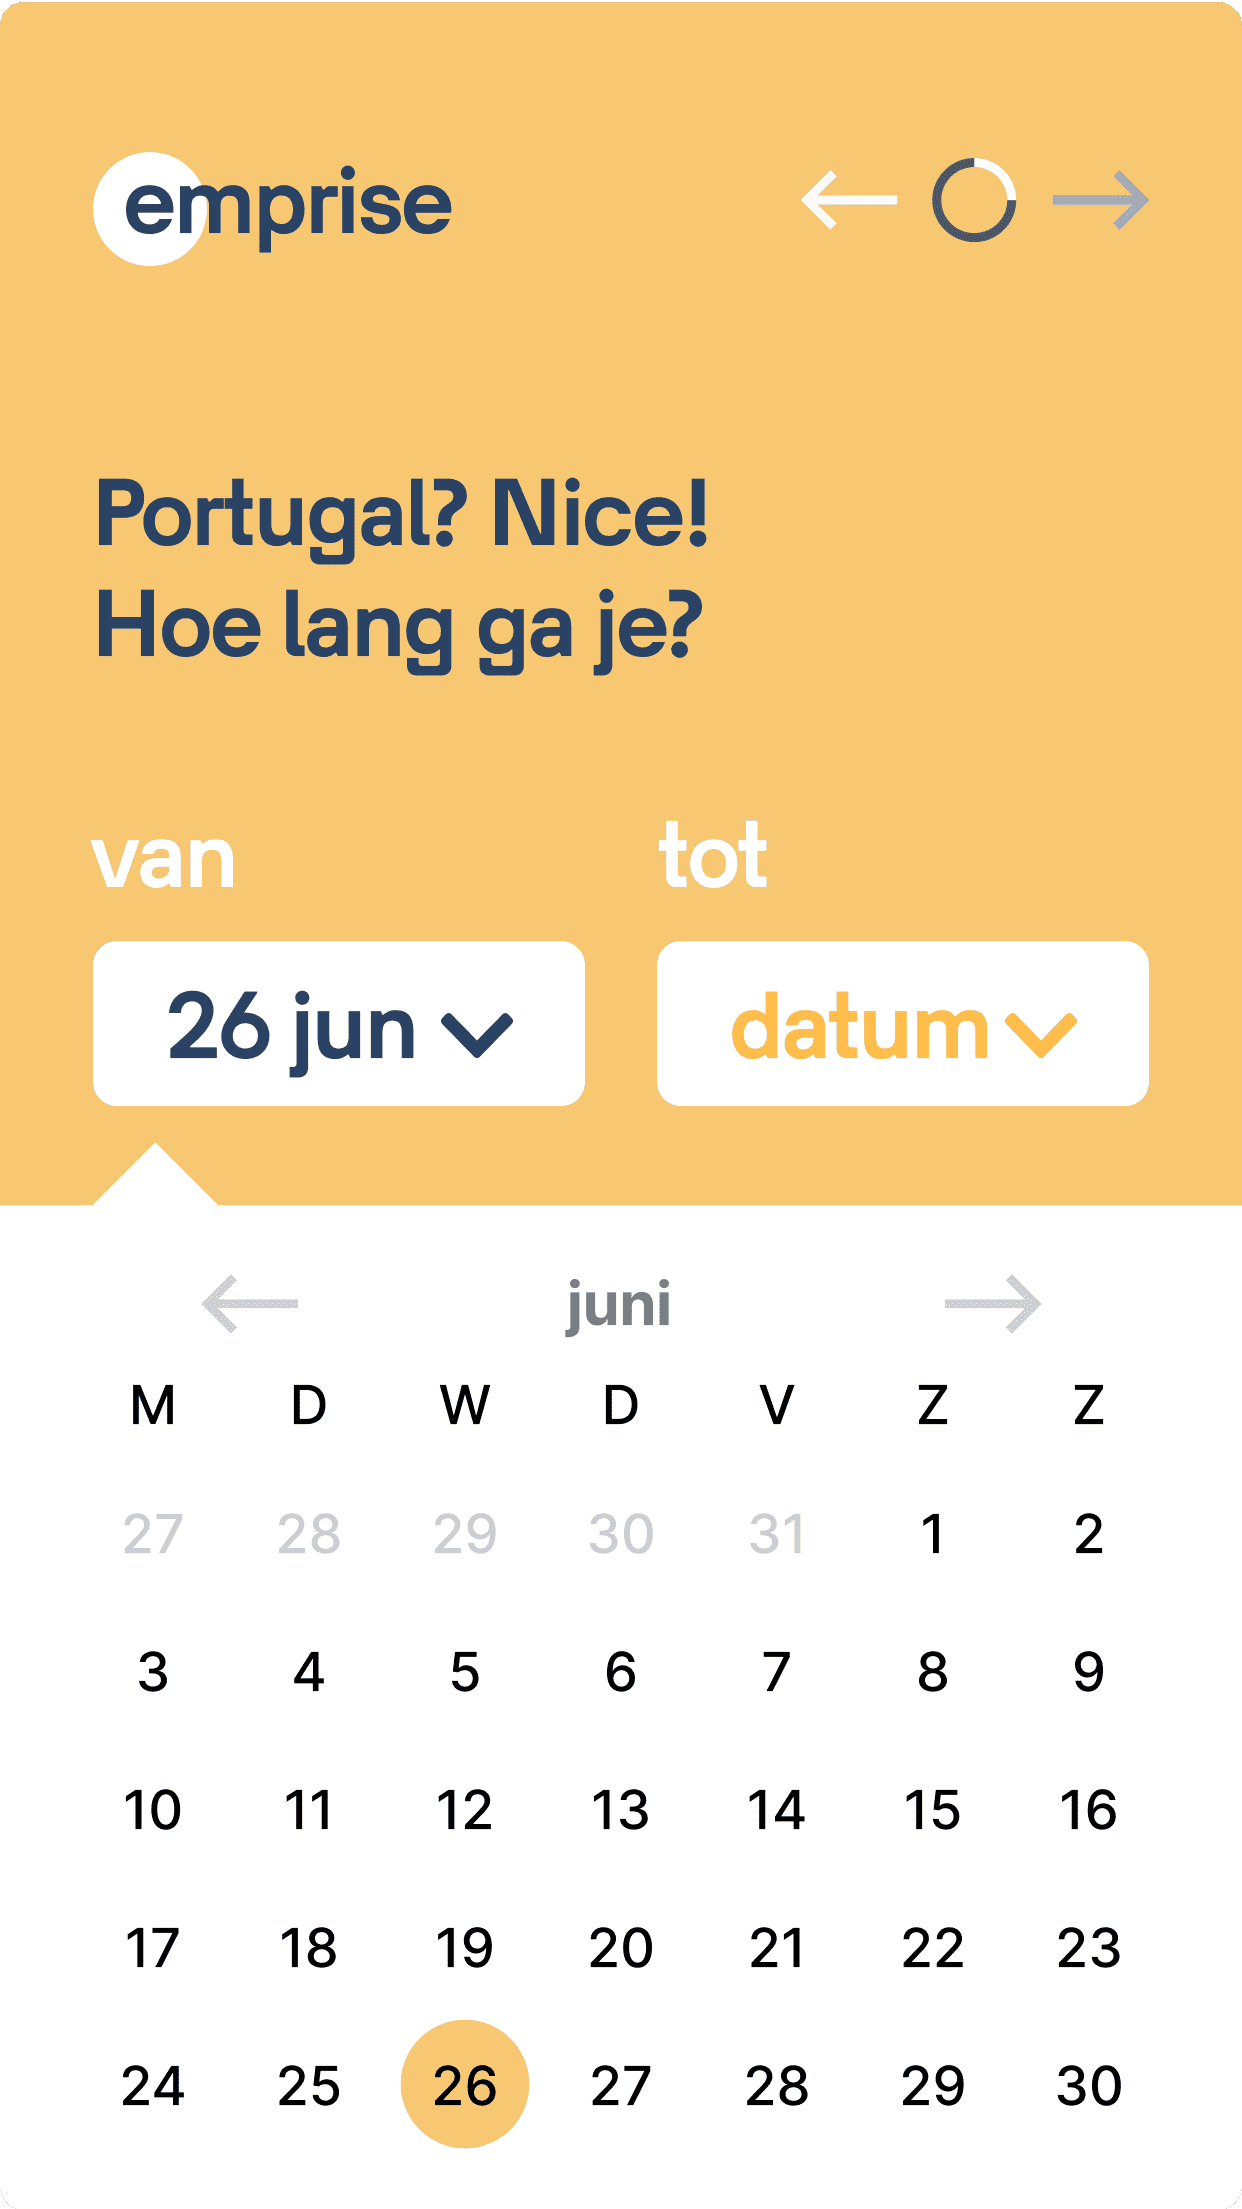 A date picker to set the duration of your trip.